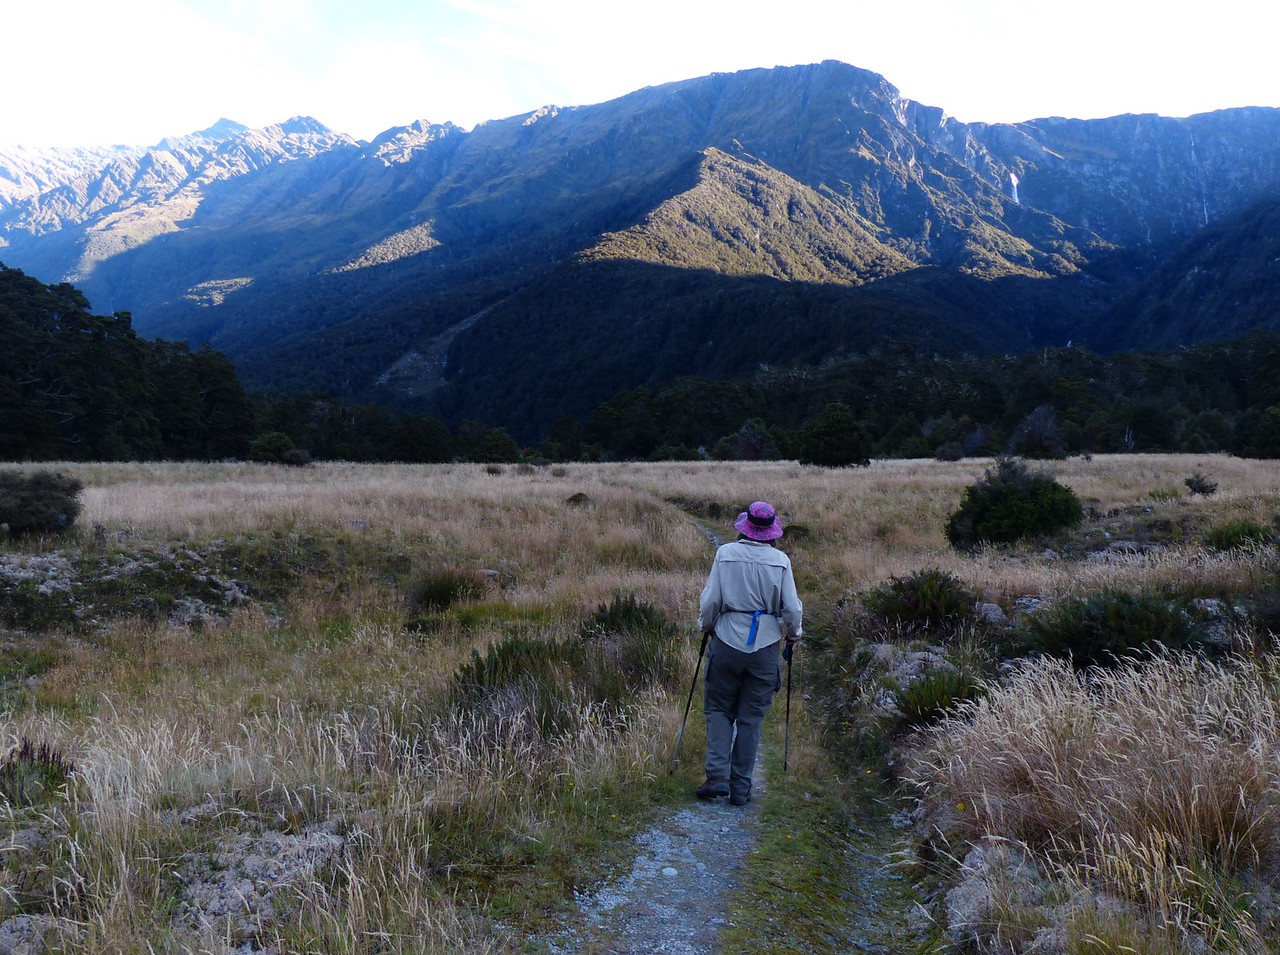 Mt. Aspiring backpack - We continued up the valley on day 2.